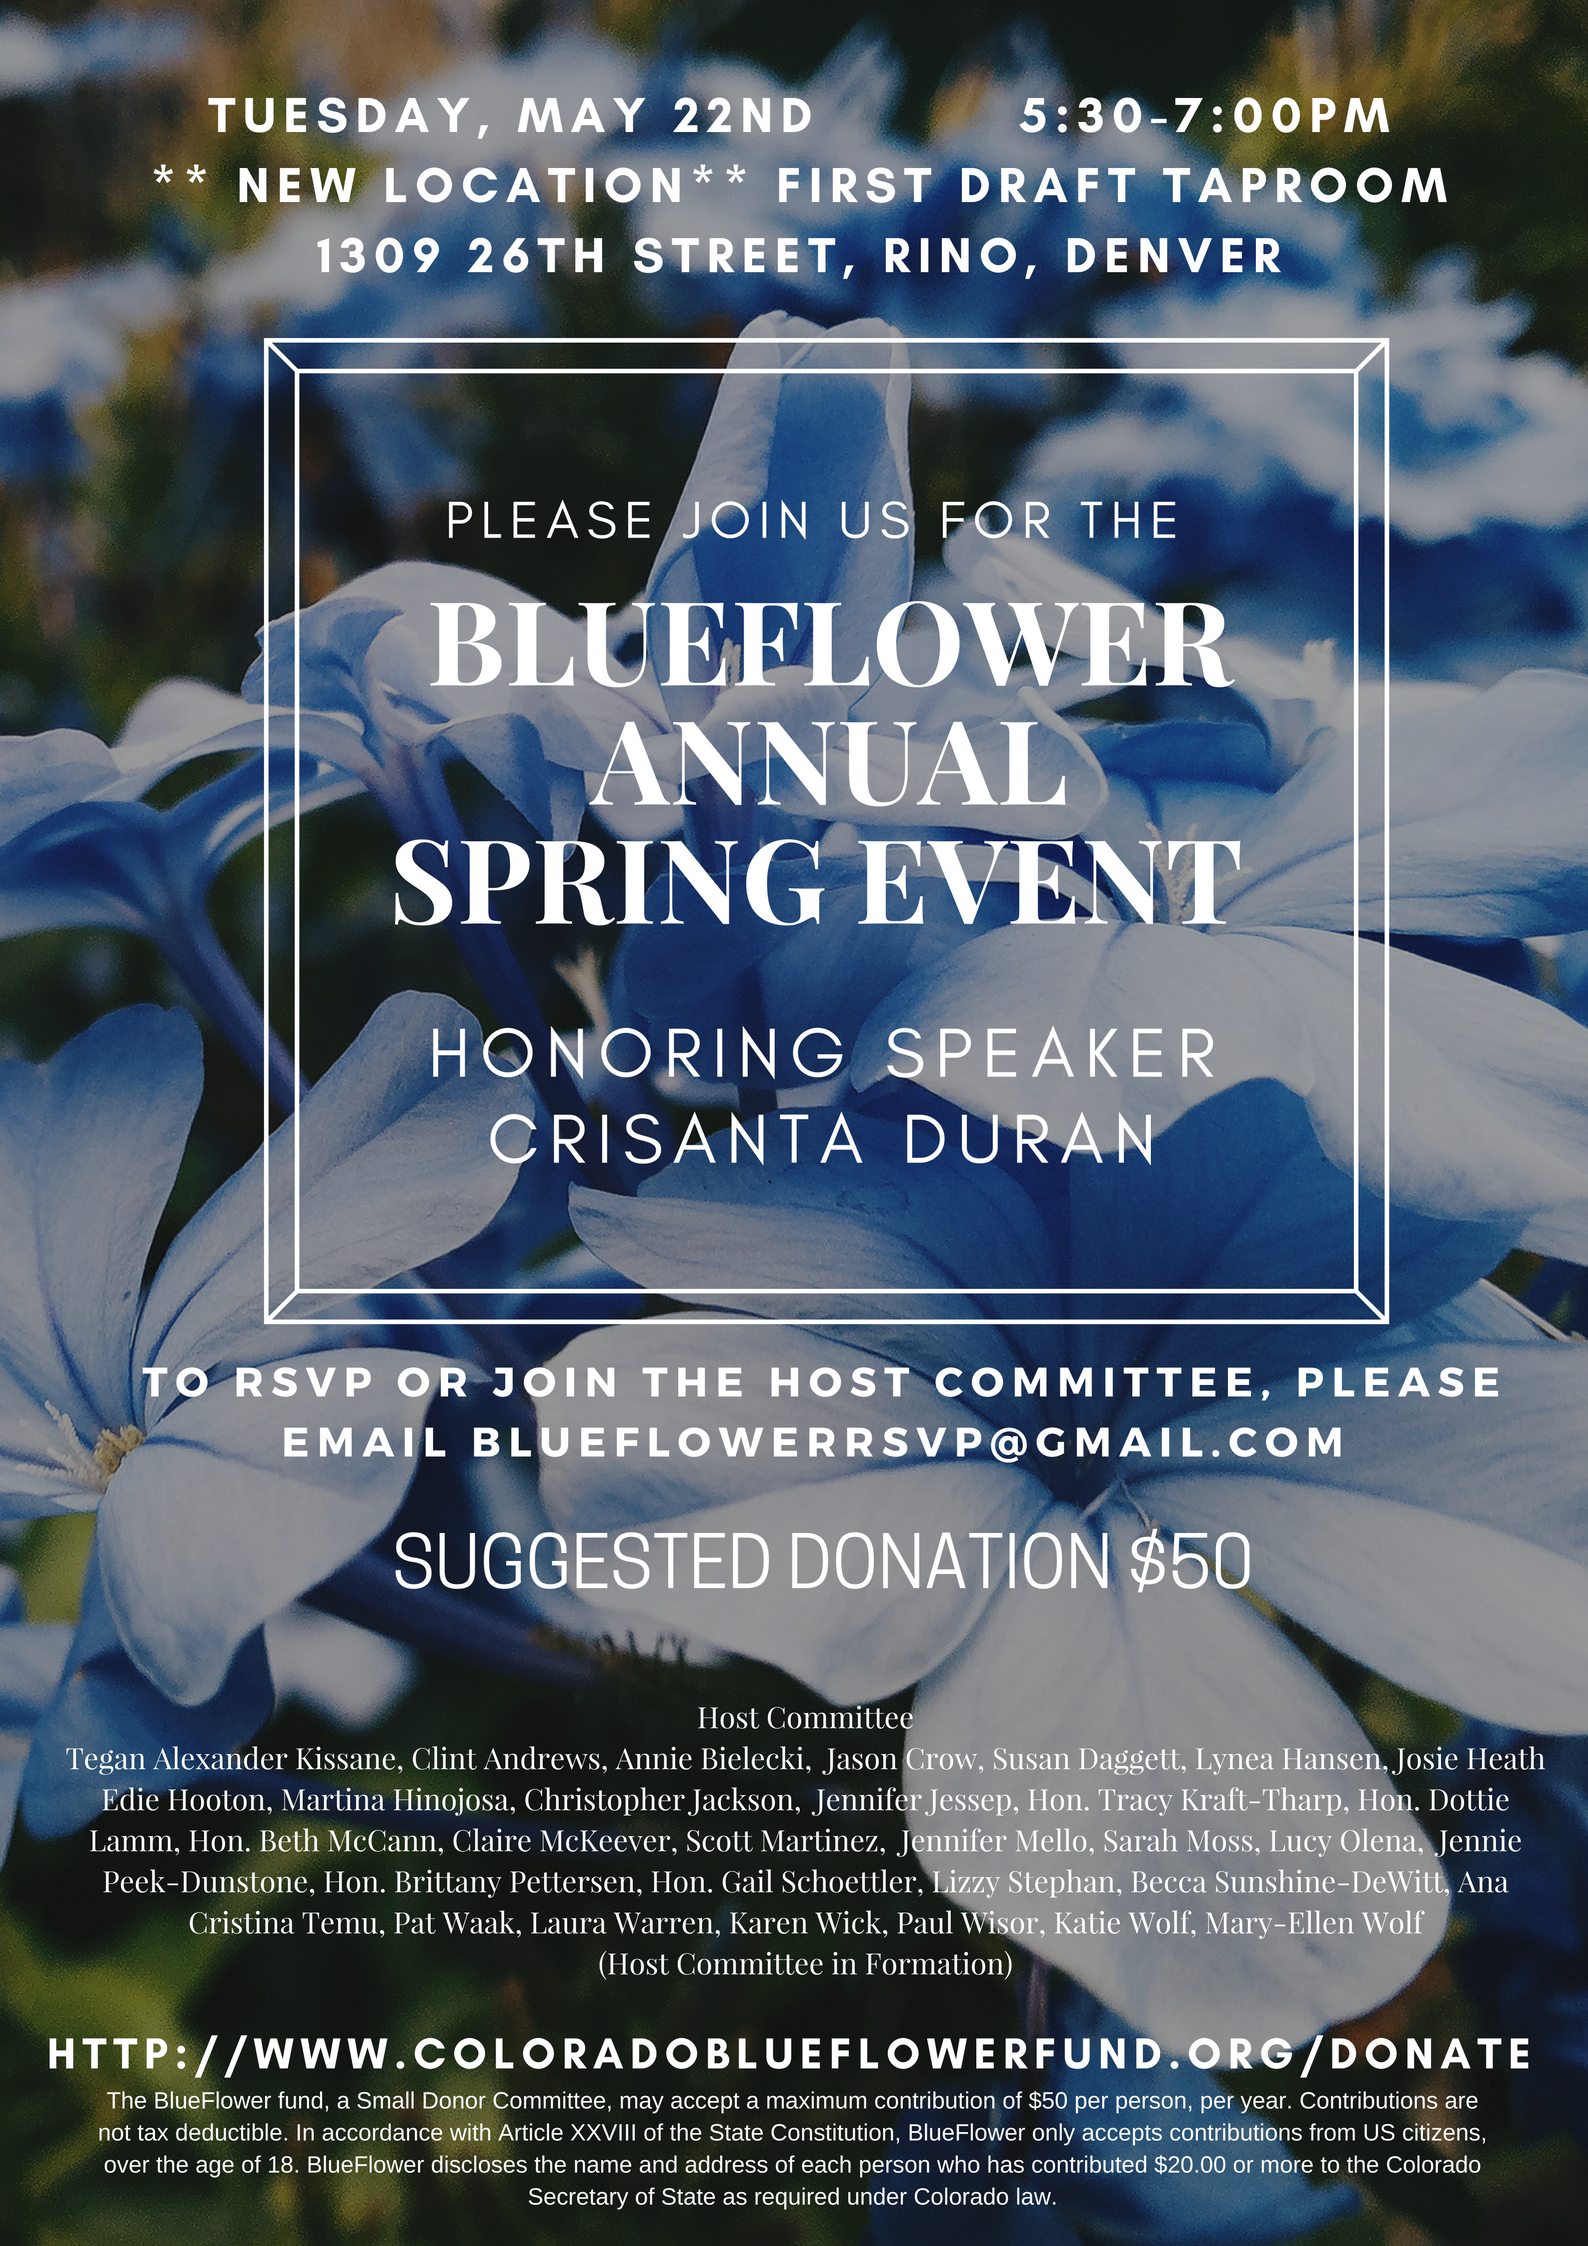 blueflowerinvit_denver_5.22.18v2.jpg